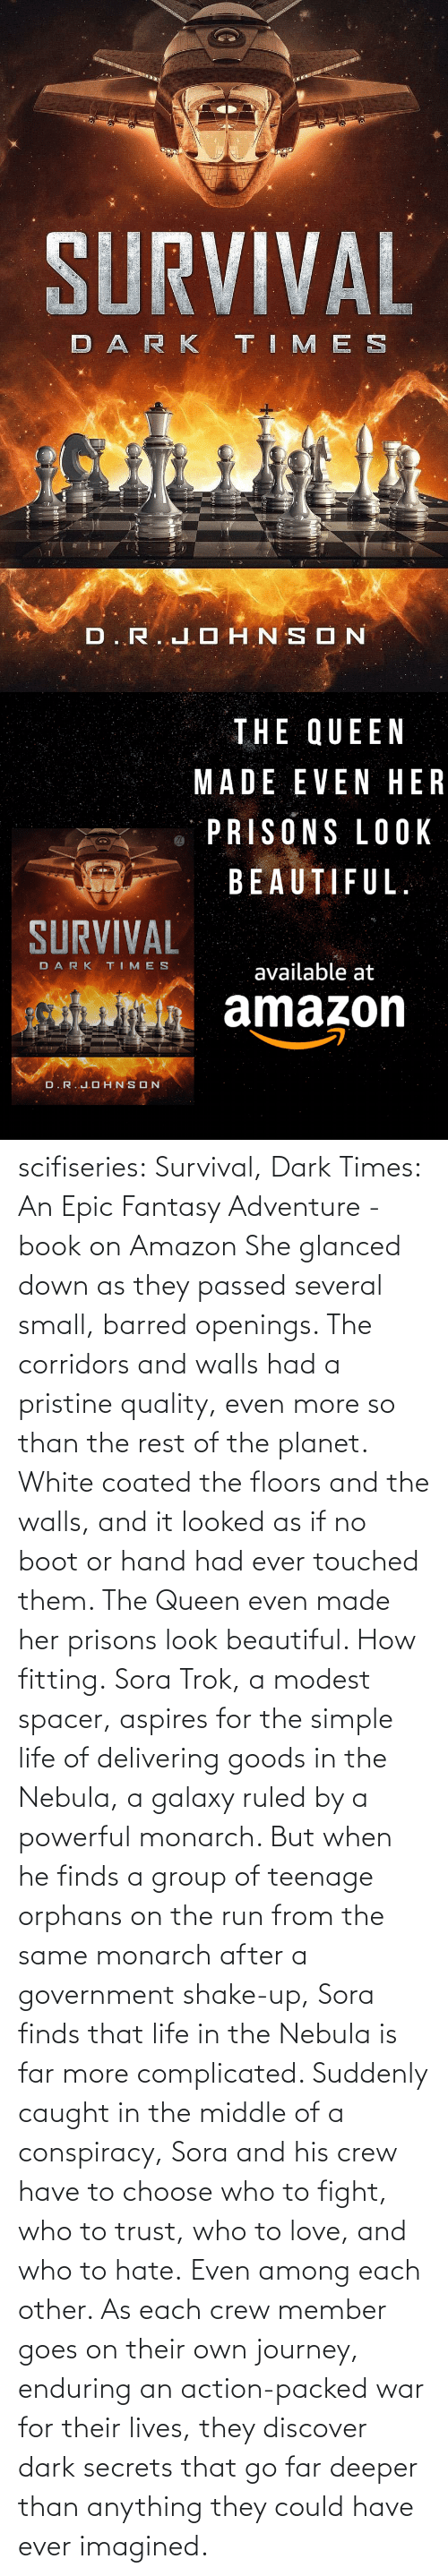 The Rest: scifiseries: Survival, Dark Times: An Epic Fantasy Adventure - book on Amazon  She glanced down as they  passed several small, barred openings. The corridors and walls had a  pristine quality, even more so than the rest of the planet. White coated  the floors and the walls, and it looked as if no boot or hand had ever  touched them.  The Queen even made her prisons look beautiful.  How fitting. Sora  Trok, a modest spacer, aspires for the simple life of delivering goods  in the Nebula, a galaxy ruled by a powerful monarch. But when he finds a  group of teenage orphans on the run from the same monarch after a  government shake-up, Sora finds that life in the Nebula is far more complicated.  Suddenly  caught in the middle of a conspiracy, Sora and his crew have to choose  who to fight, who to trust, who to love, and who to hate. Even among each other.  As  each crew member goes on their own journey, enduring an action-packed  war for their lives, they discover dark secrets that go far deeper than  anything they could have ever imagined.